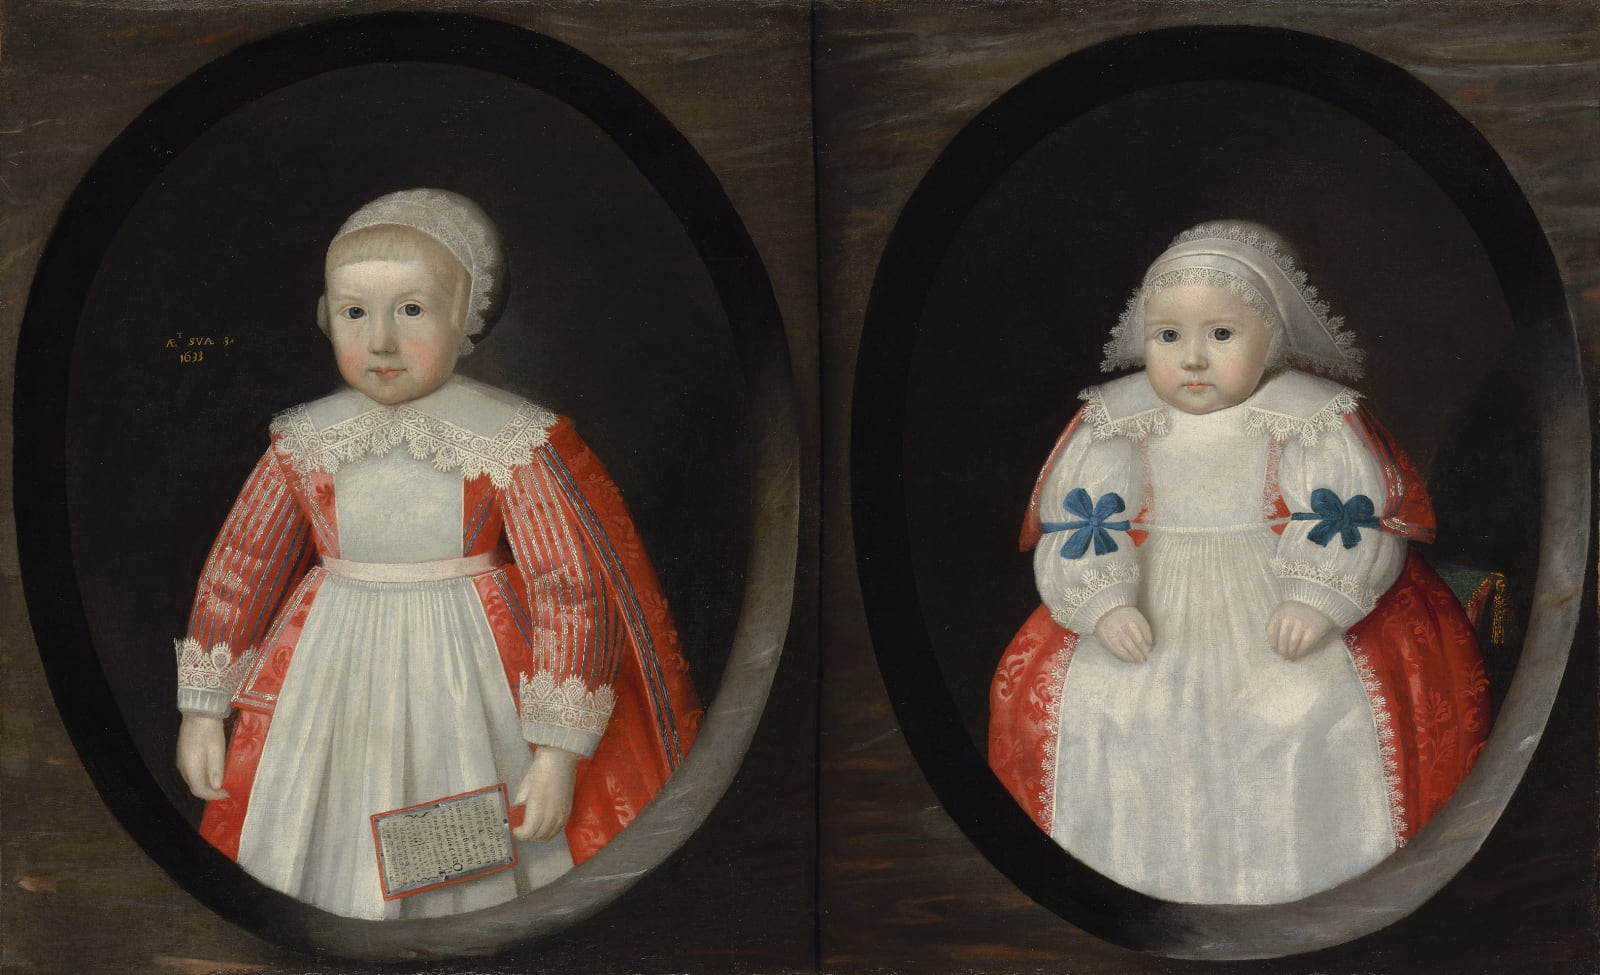 Two young children of the Courtenay family, possibly Anne (b. 1630) and Susan (b. 1632) Courtenay